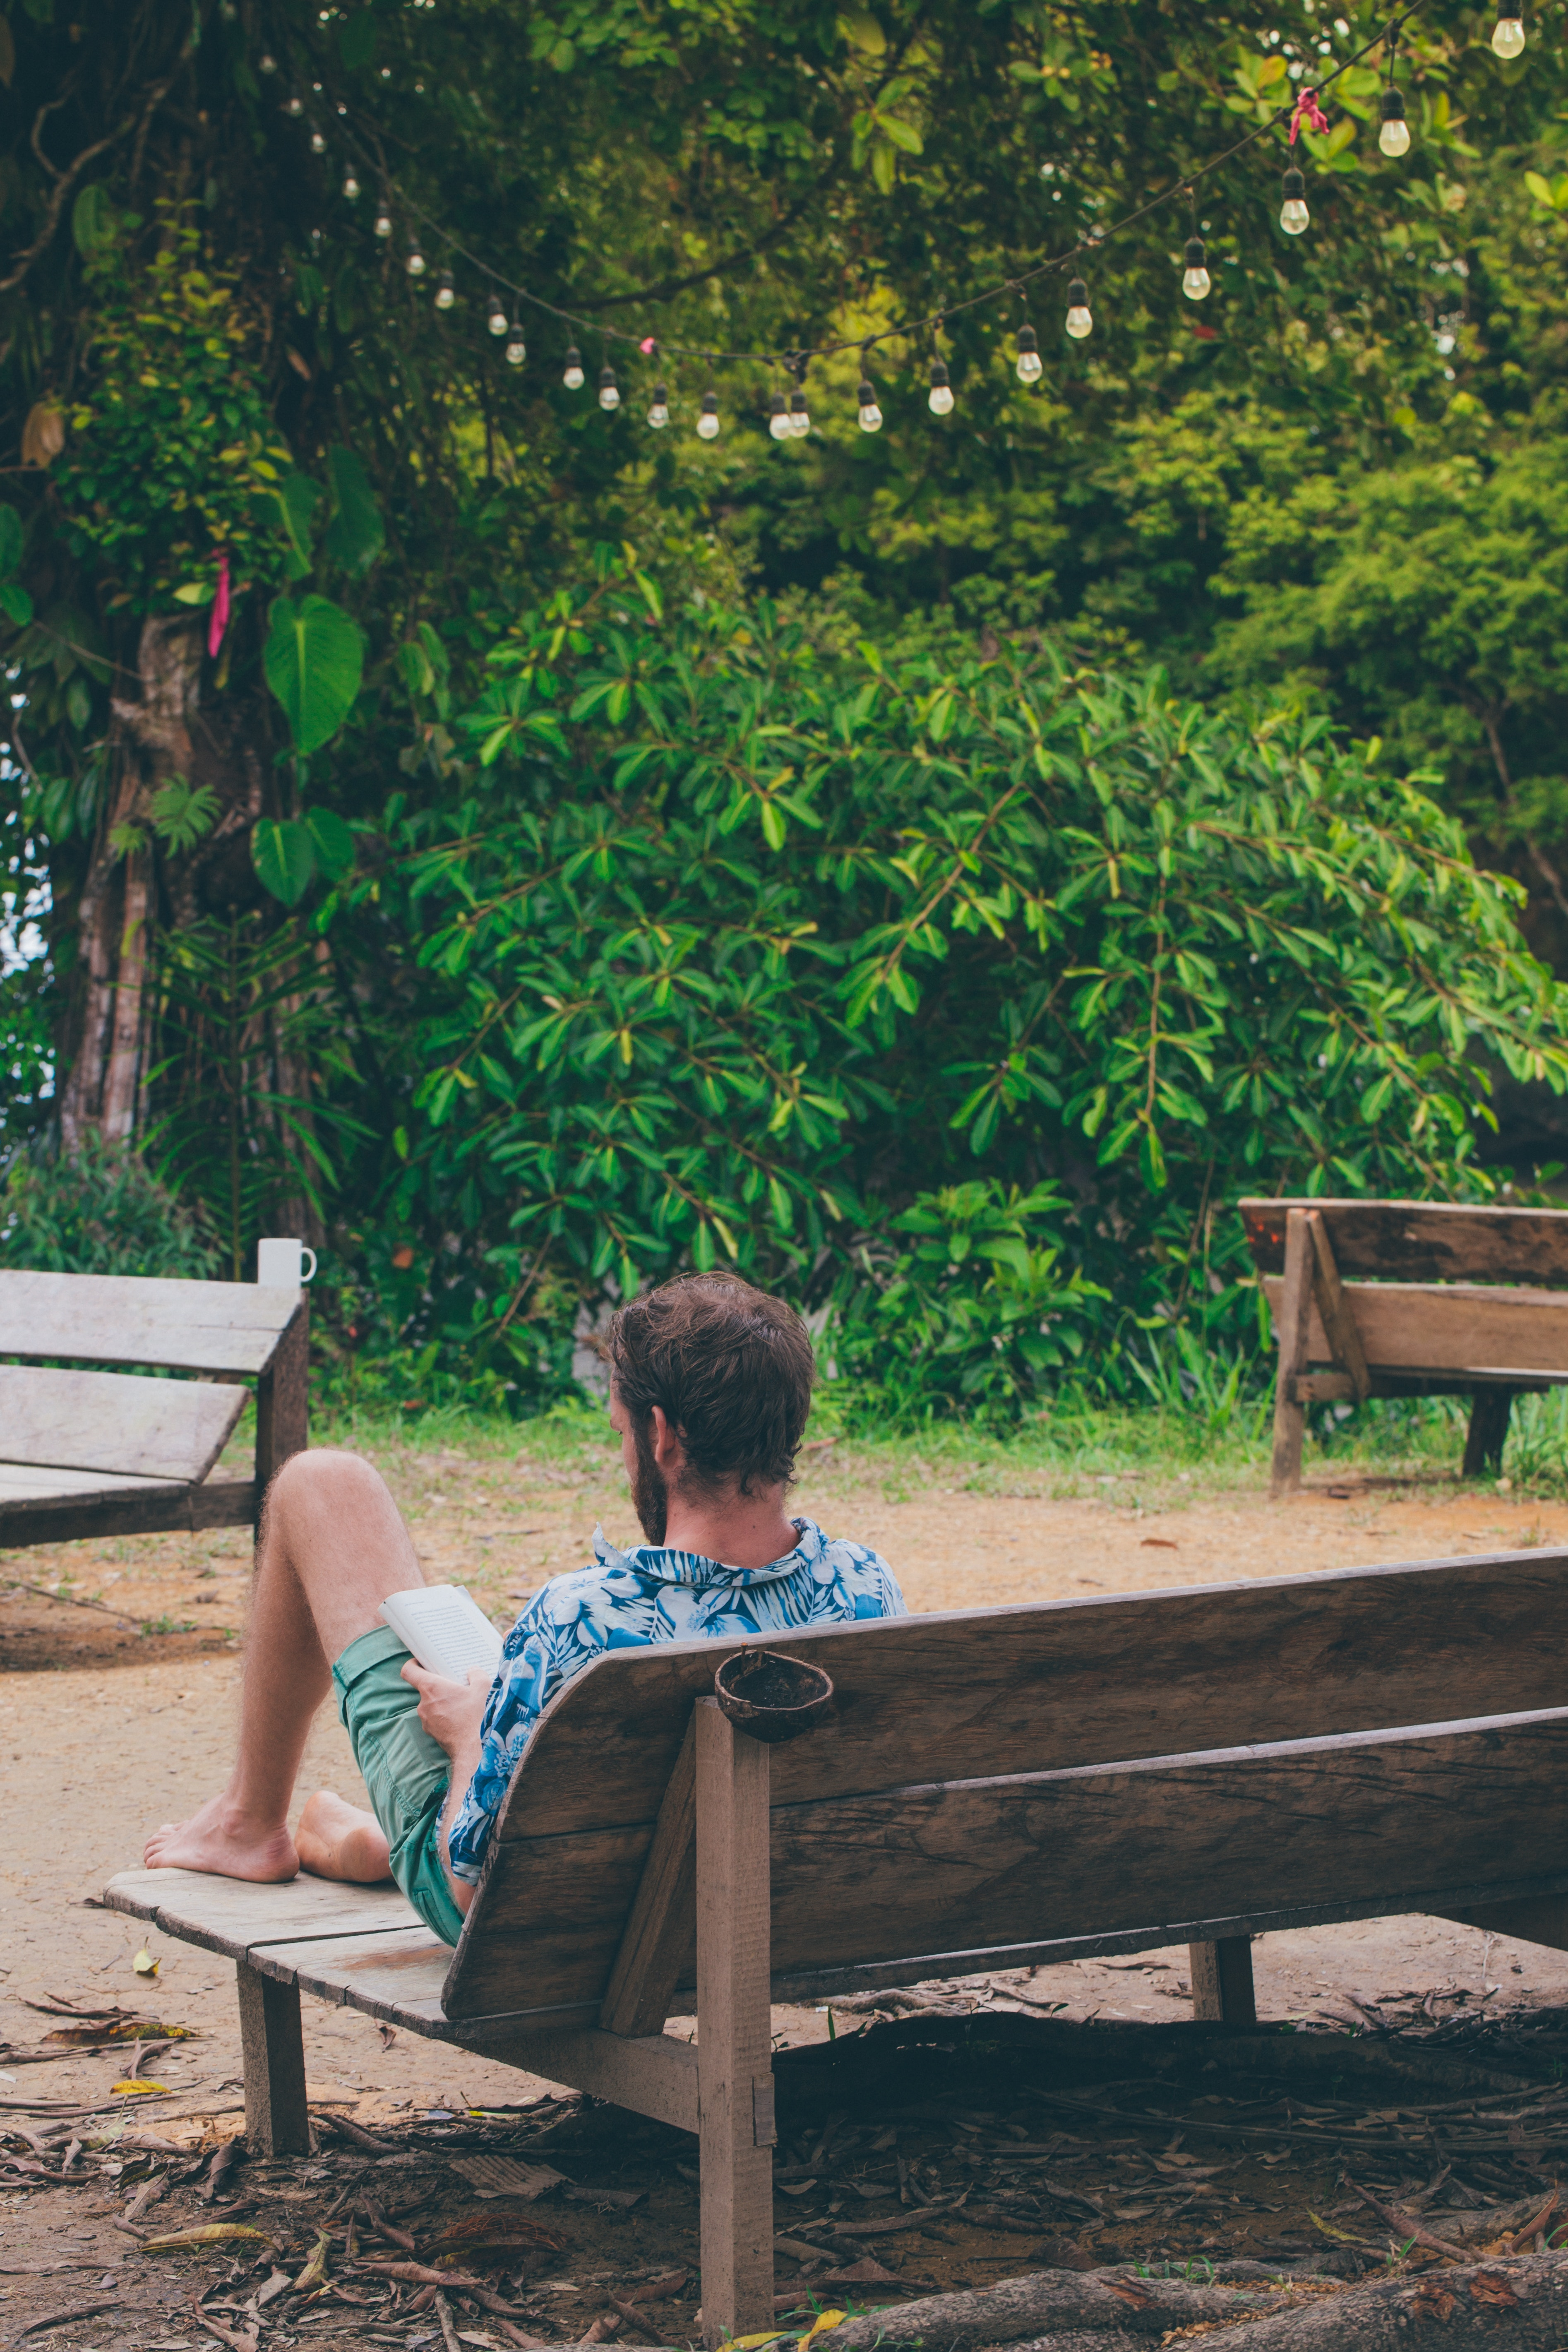 Photo Of Men Sitting On Picnic Bench 183 Free Stock Photo